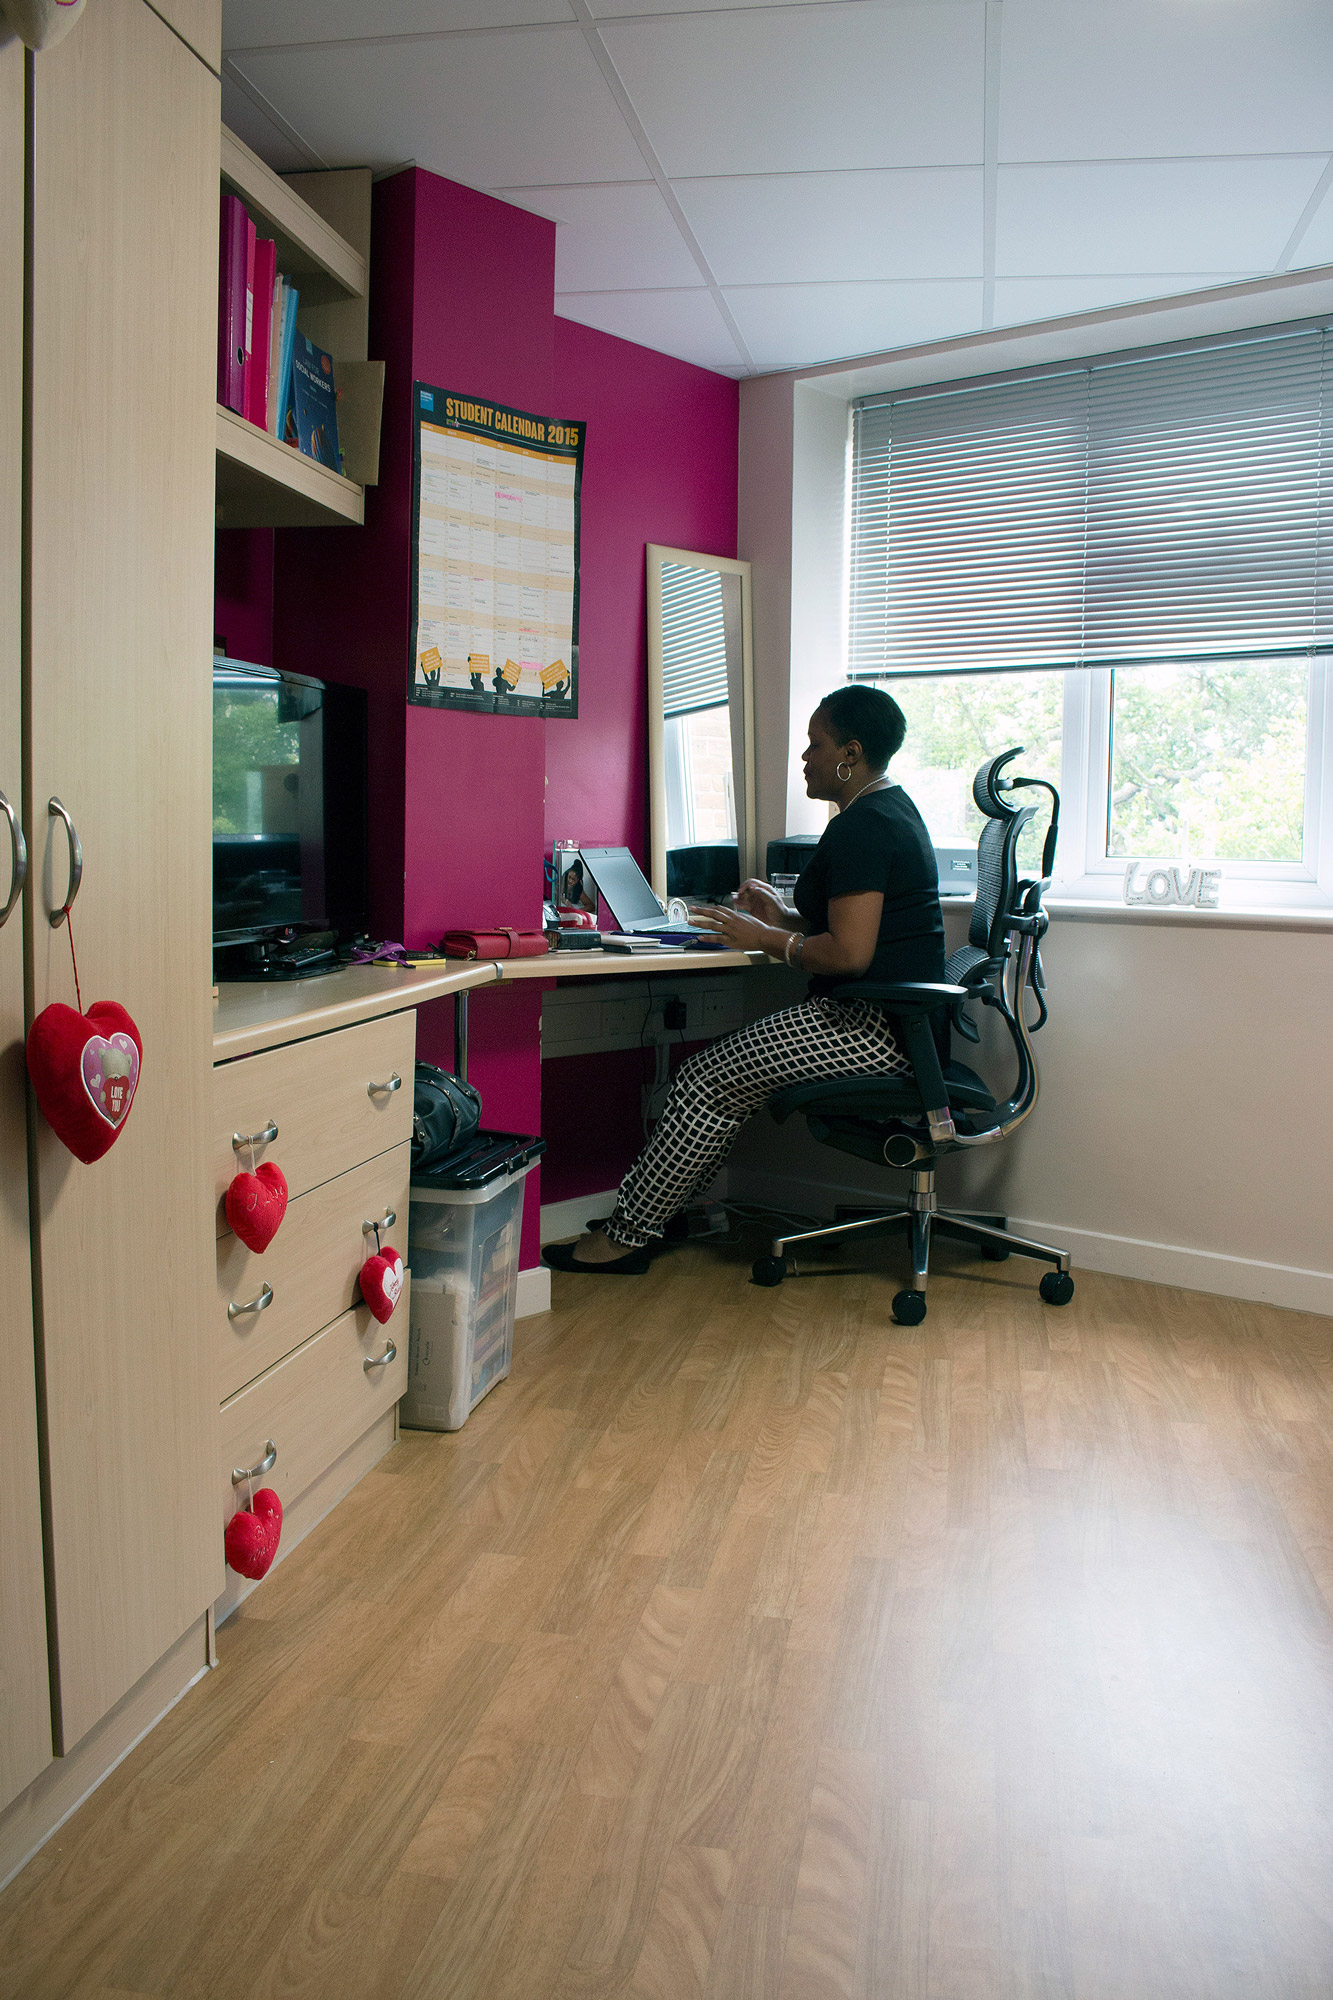 east kingston chat rooms Find out what facilities will be in your room our rooms are refurbished regularly, so you'll always get a quality room to enjoy a good night's sleep in.